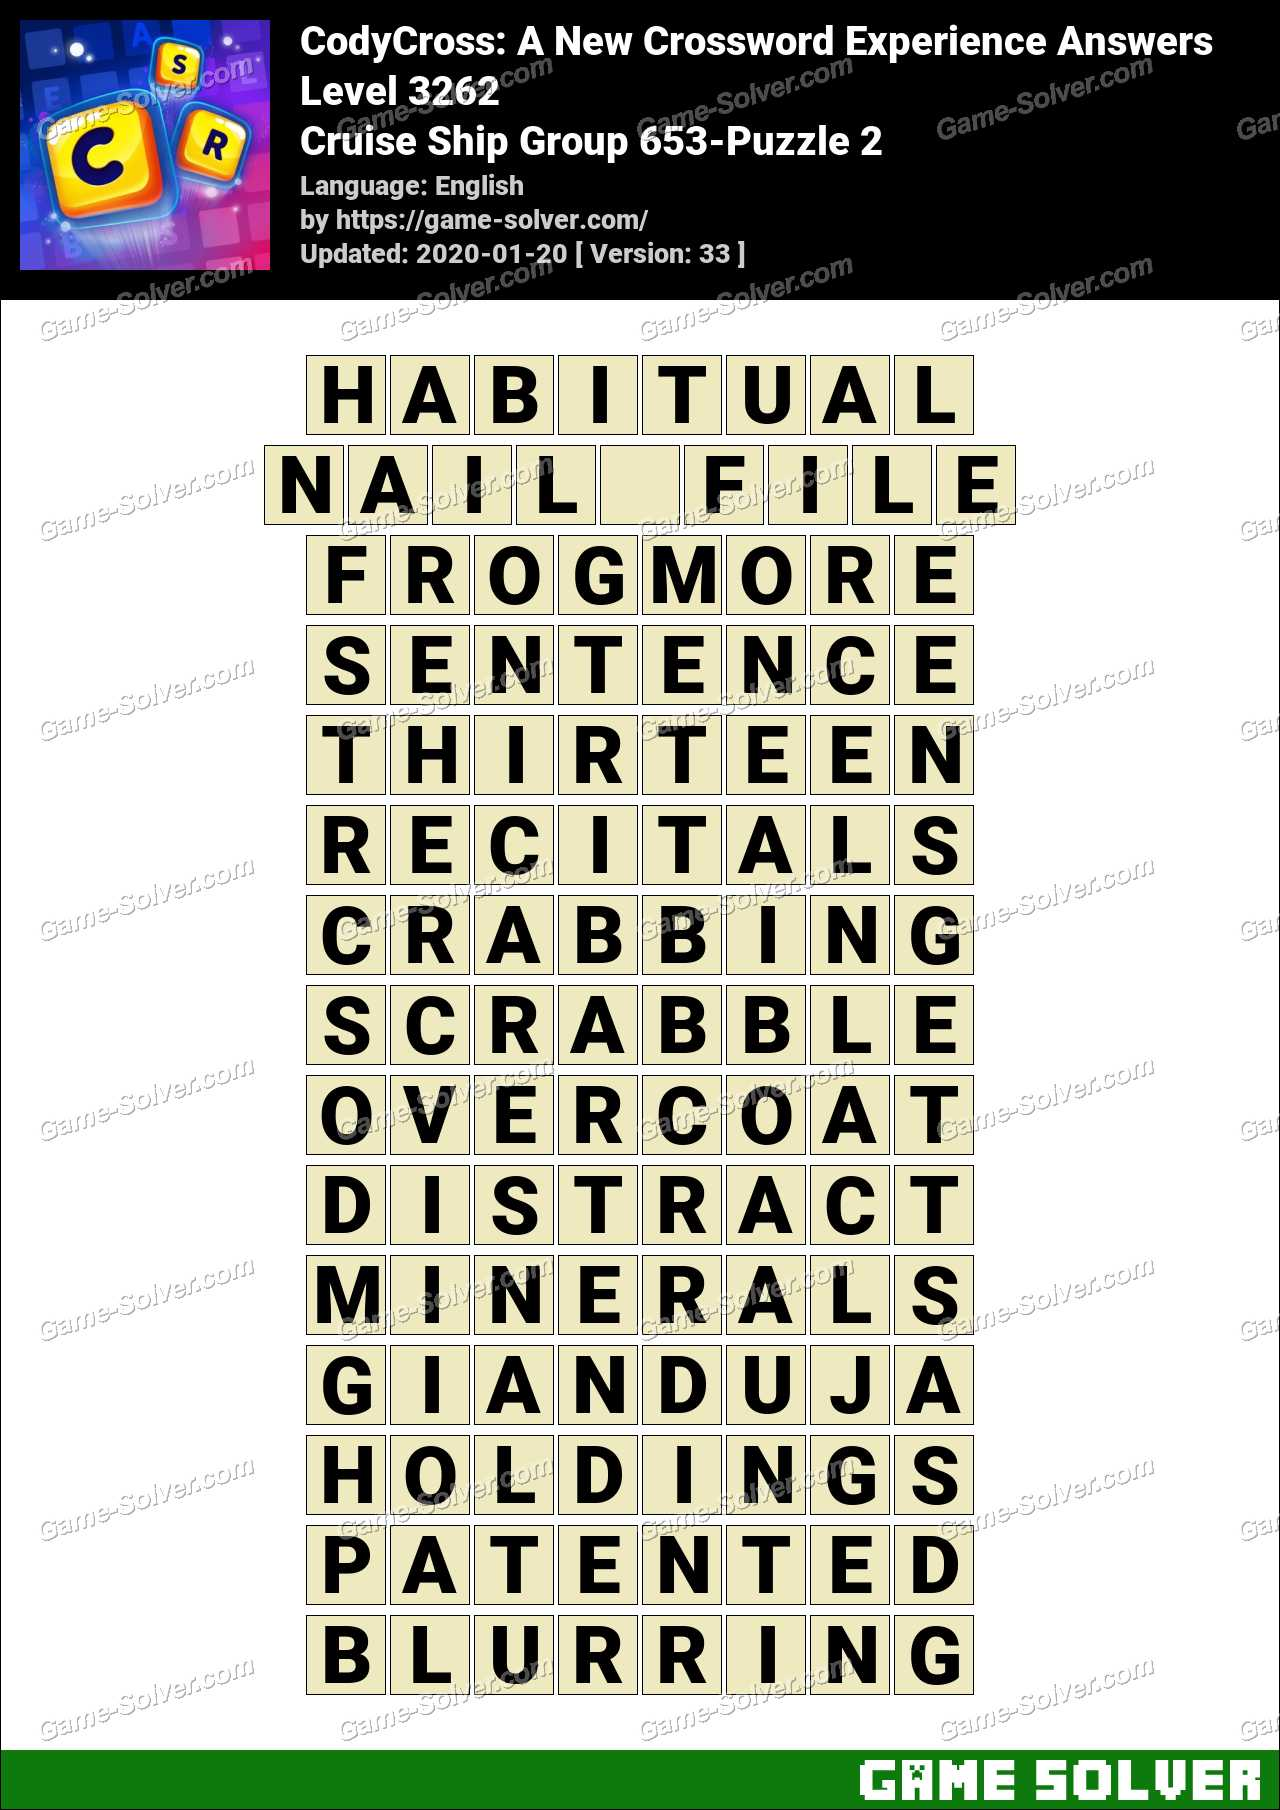 CodyCross Cruise Ship Group 653-Puzzle 2 Answers - Game Solver